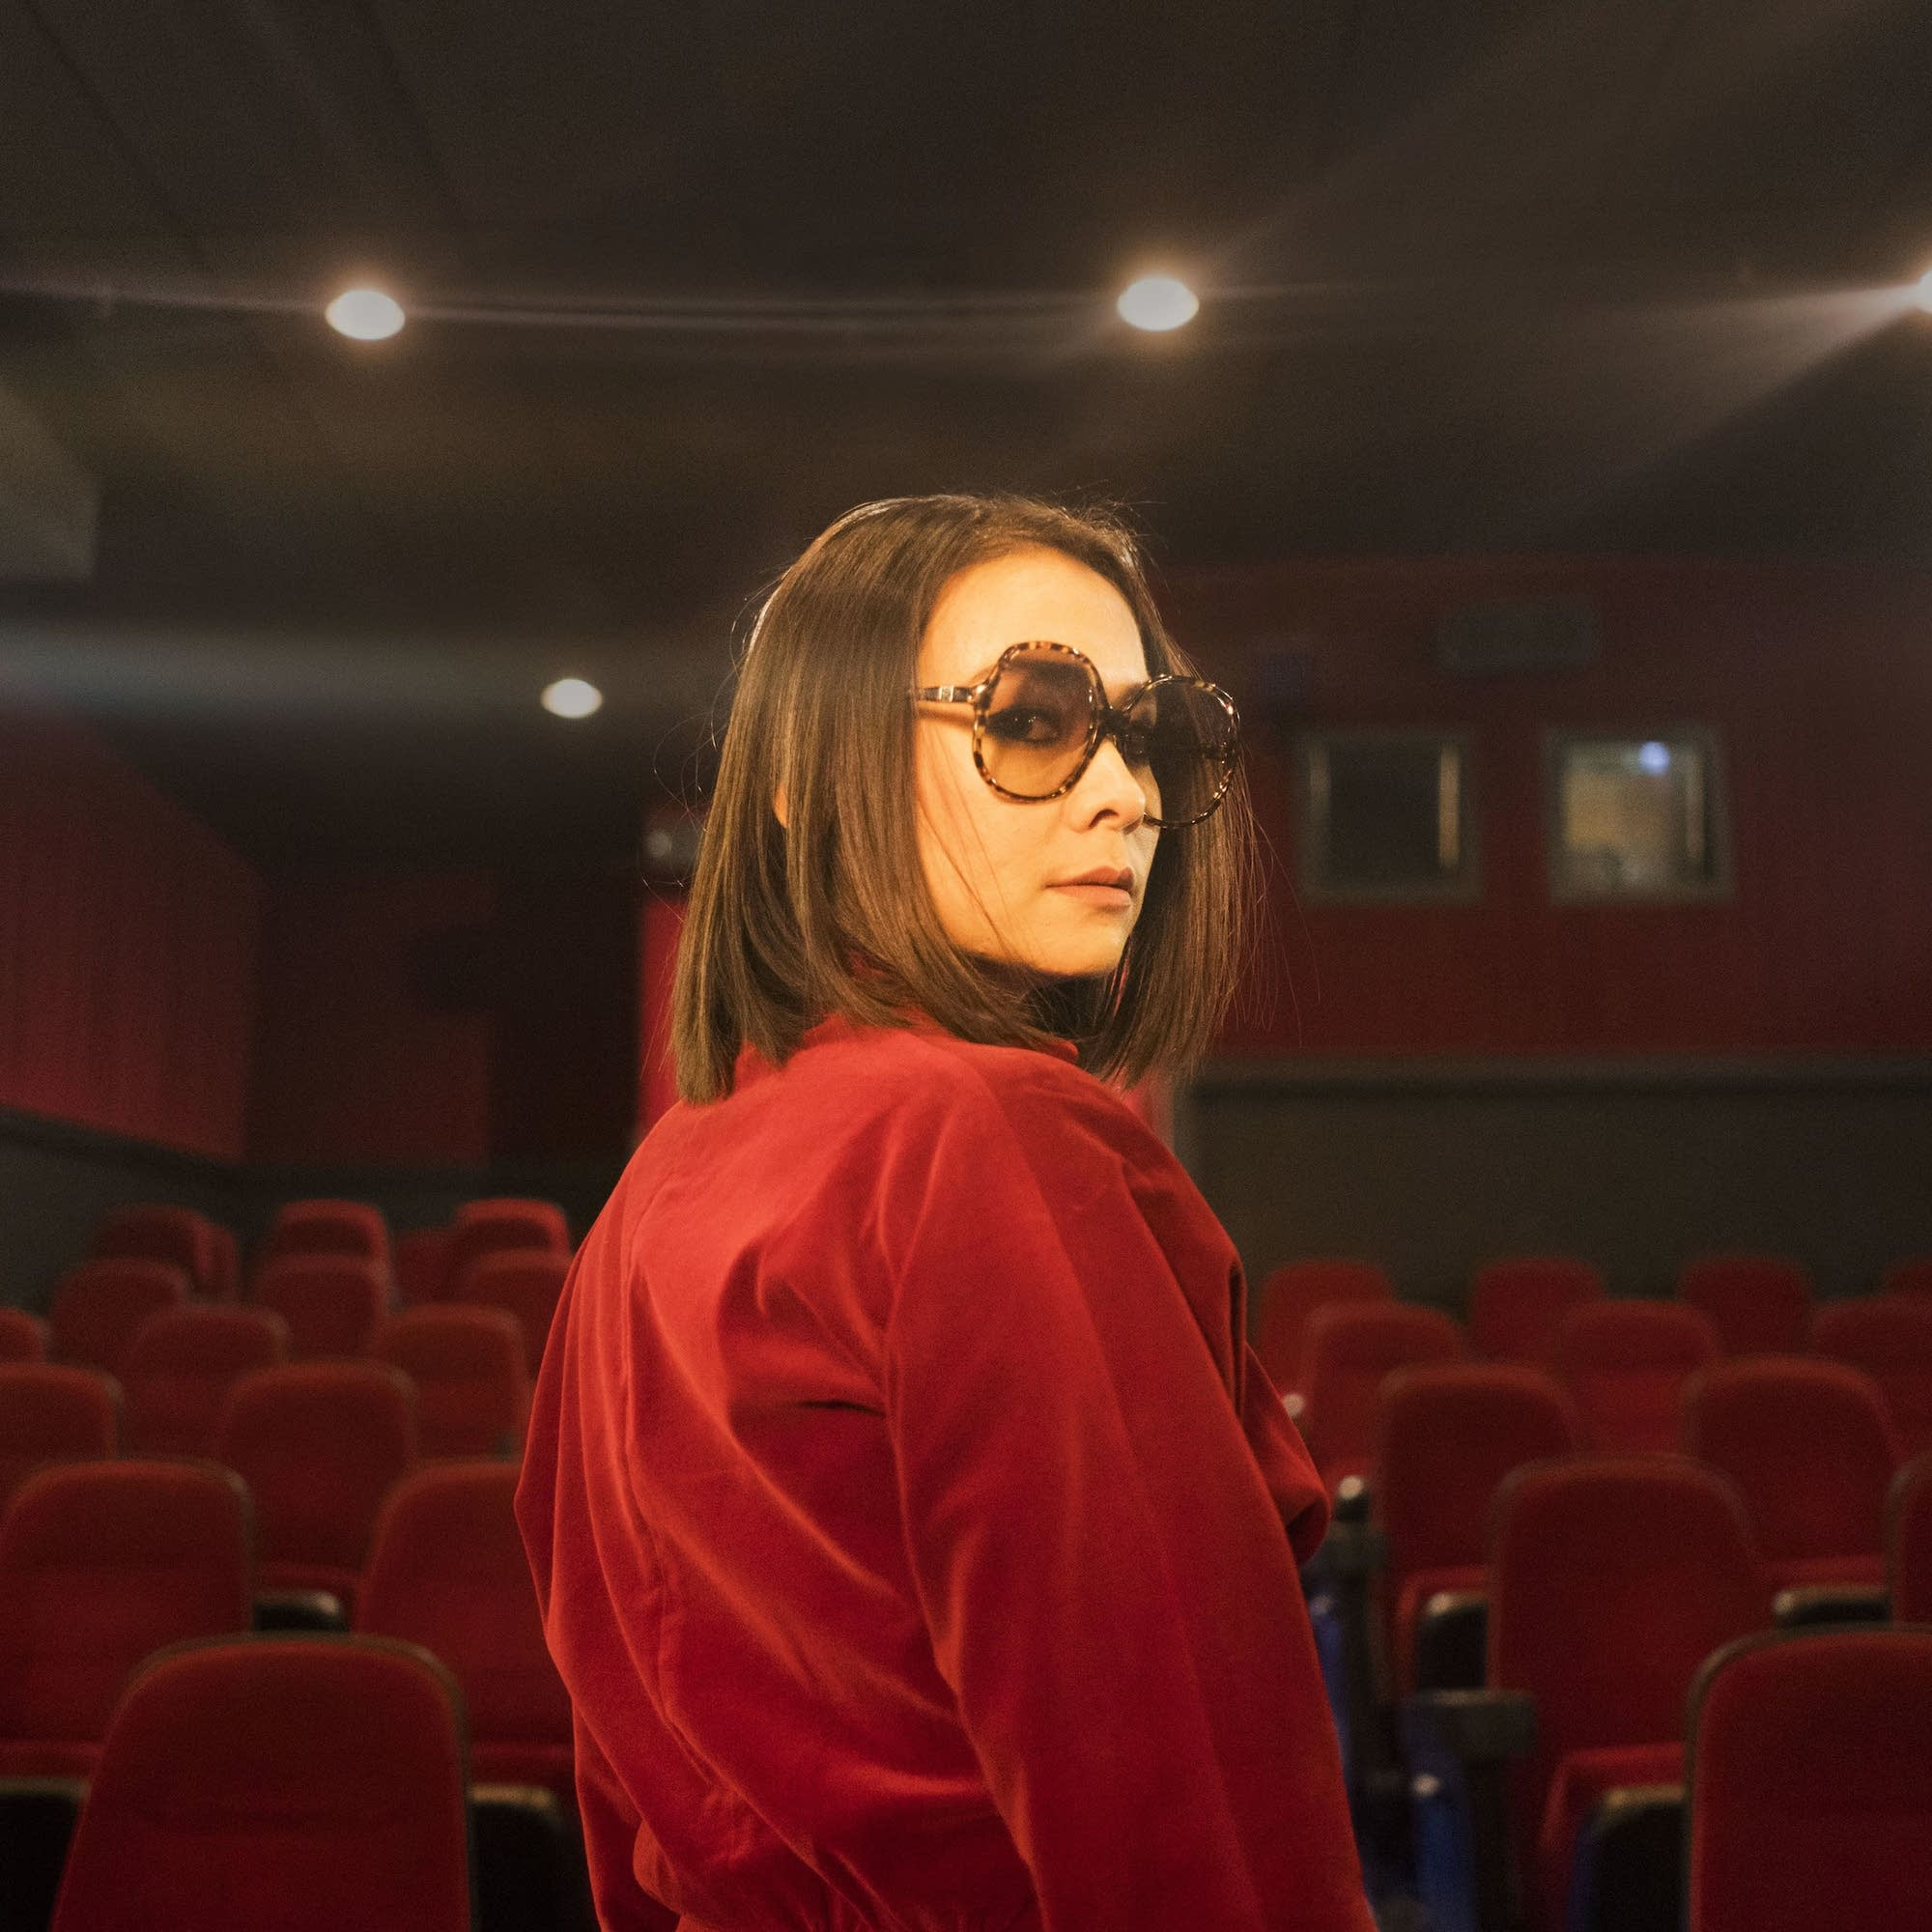 Mitski press photo